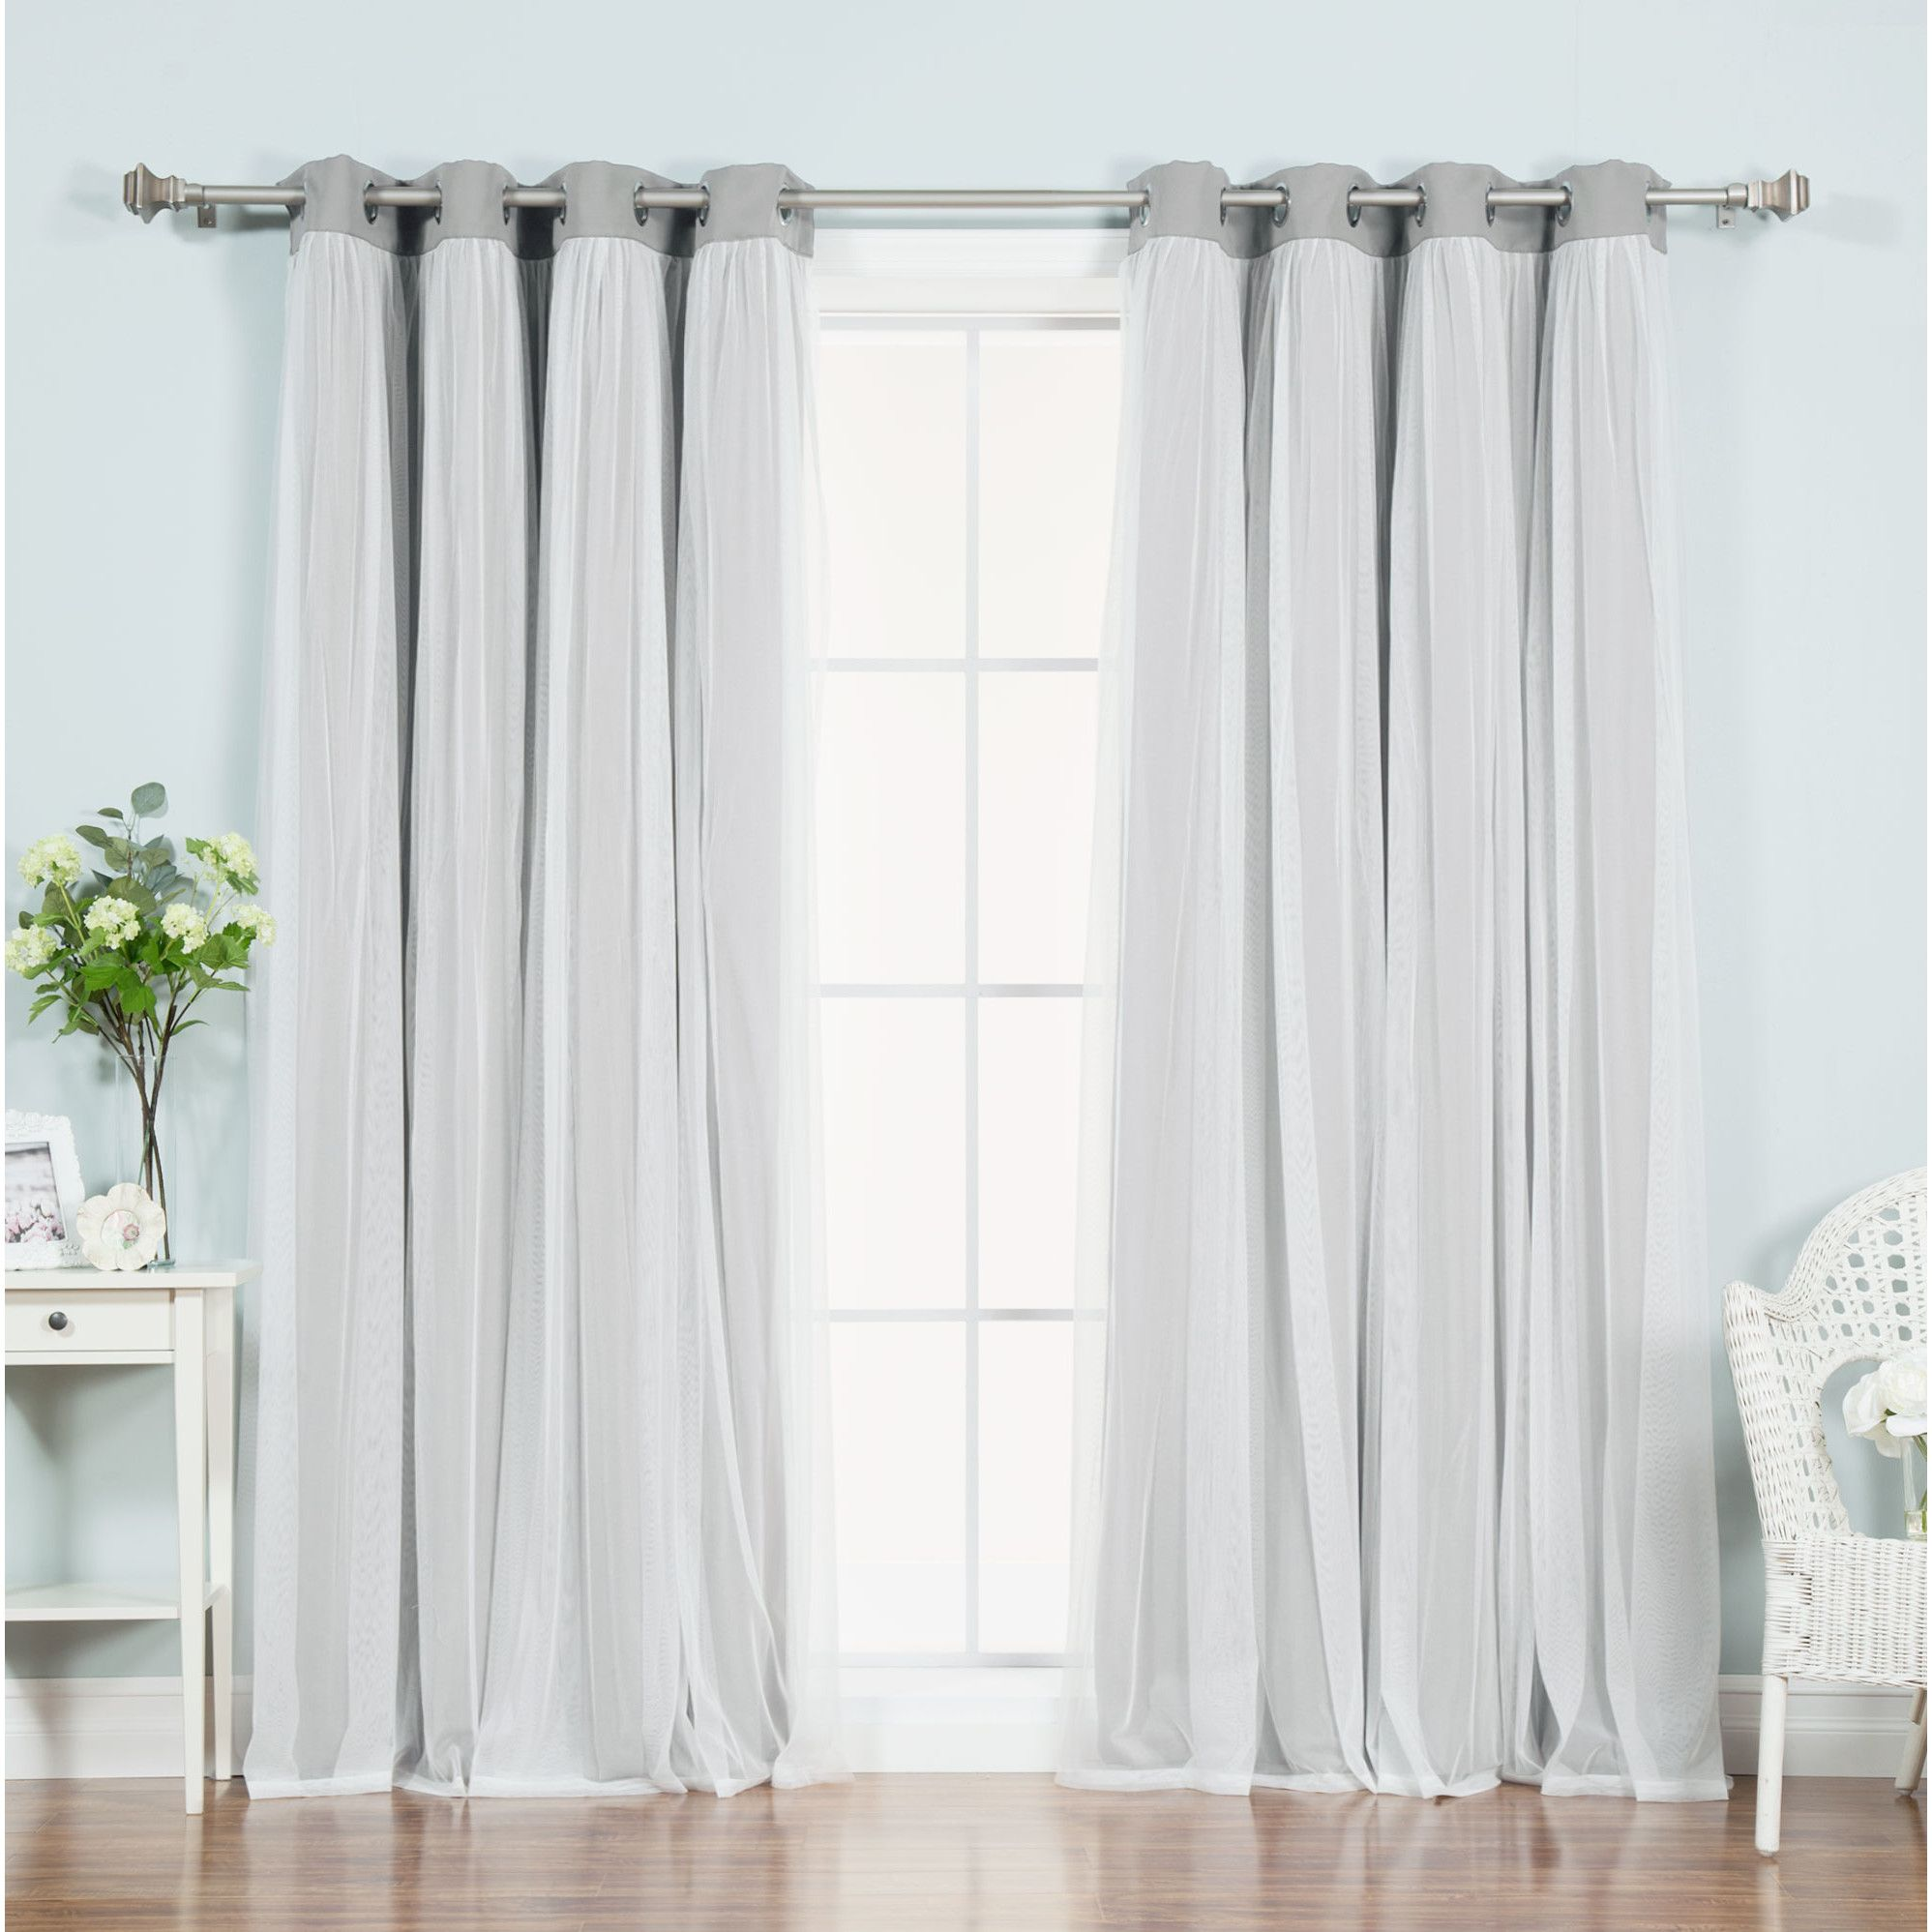 request quote curtains white curtain linen blackout in dubai call uae master across